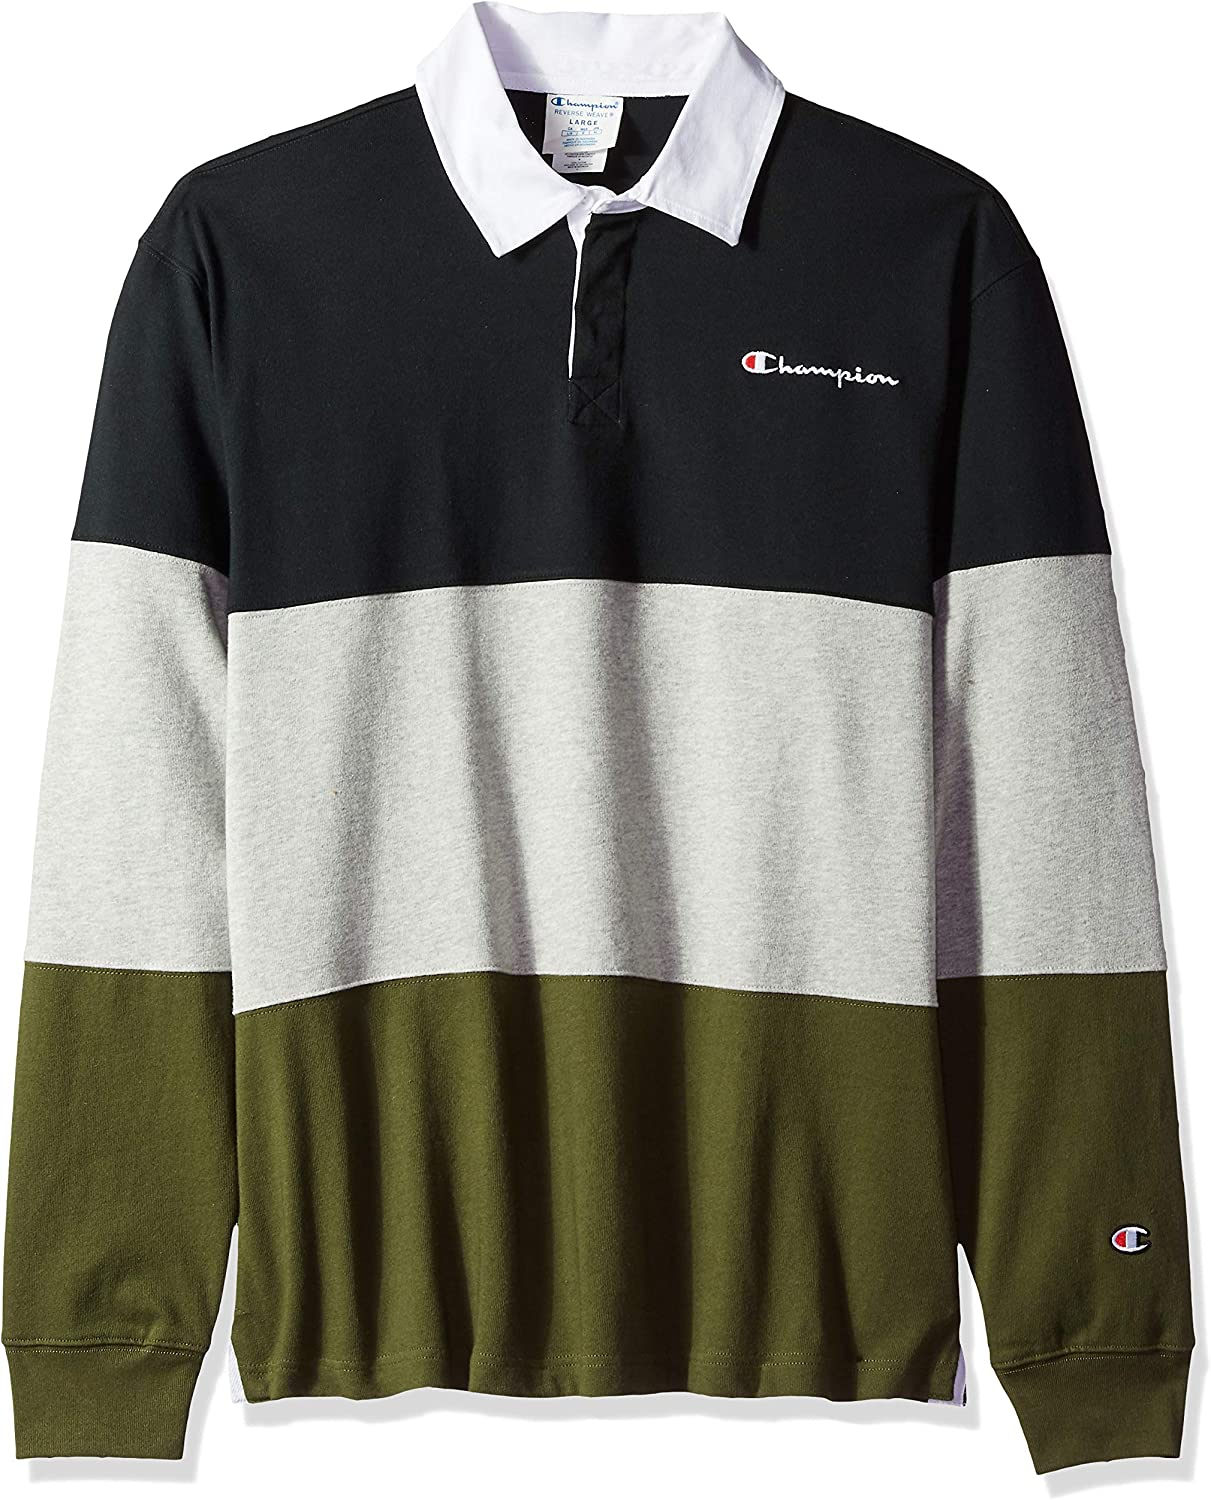 Champion LIFE Men's Colorblock Rugby Shirt